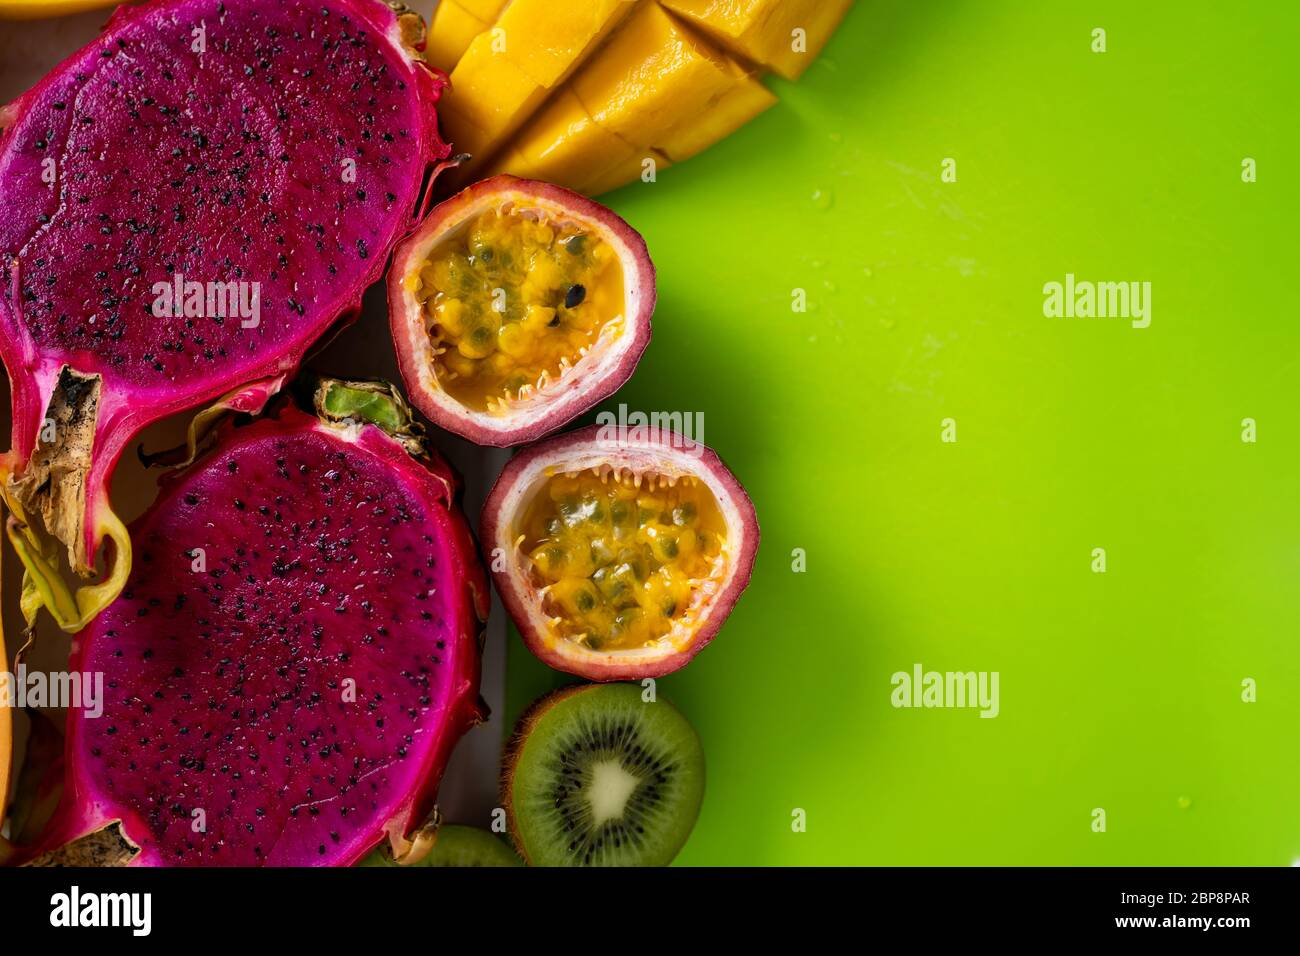 Closeup of sliced tropical exotic fruits on on green cutting board. Top view. Copy space for your text. Fresh mango, dragon fruit, kiwi, maracuja, pap Stock Photo